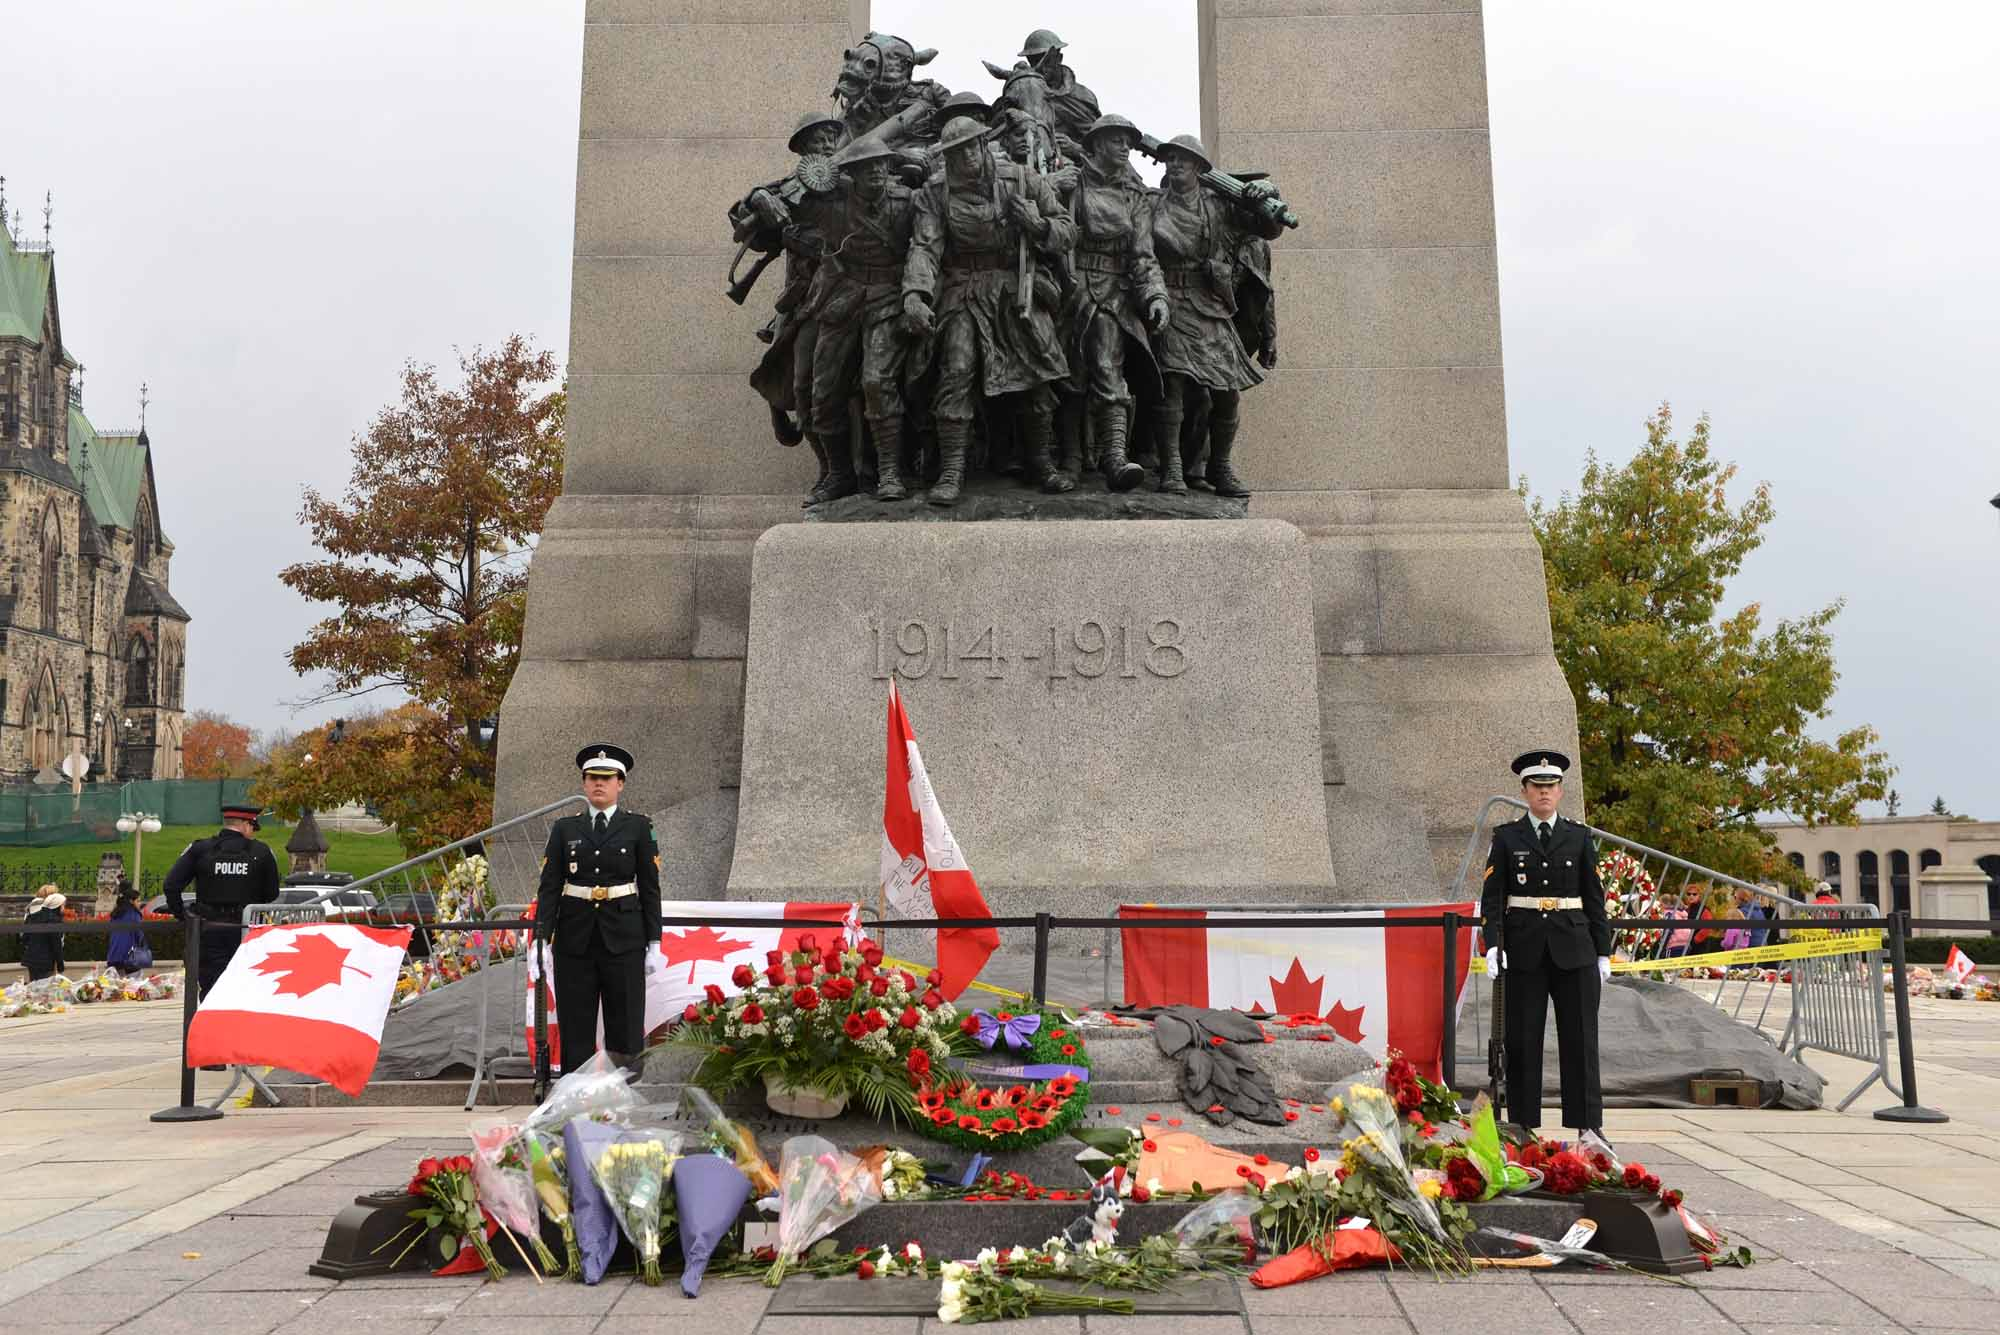 Sentries at the Cenotaph in Ottawa